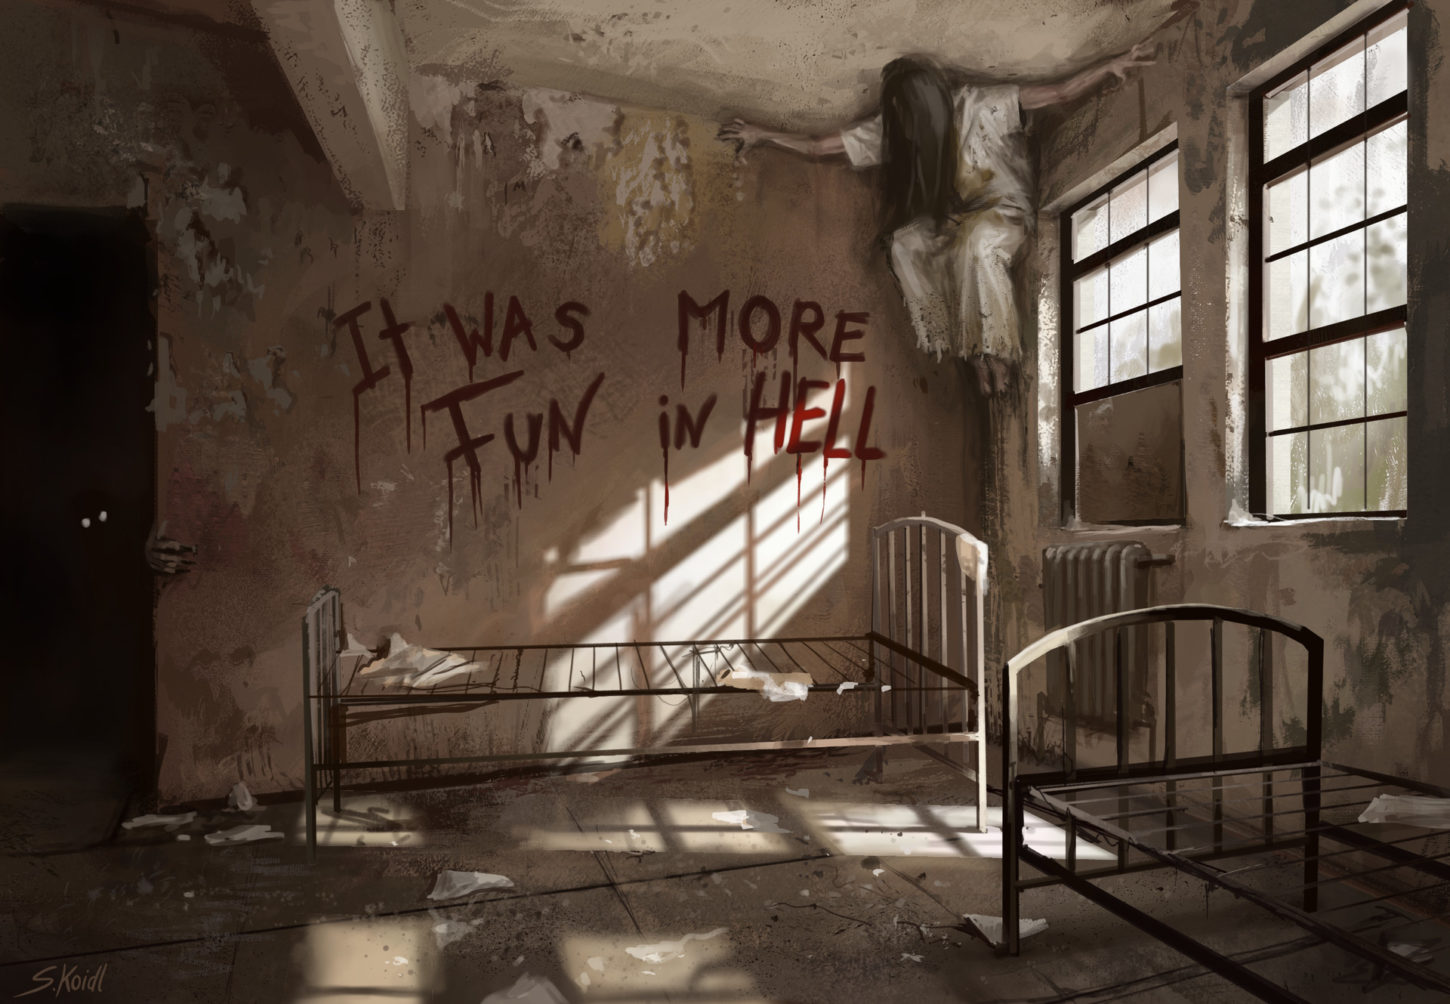 Haunted asylum More fun in hell, Stefan Koidl_01